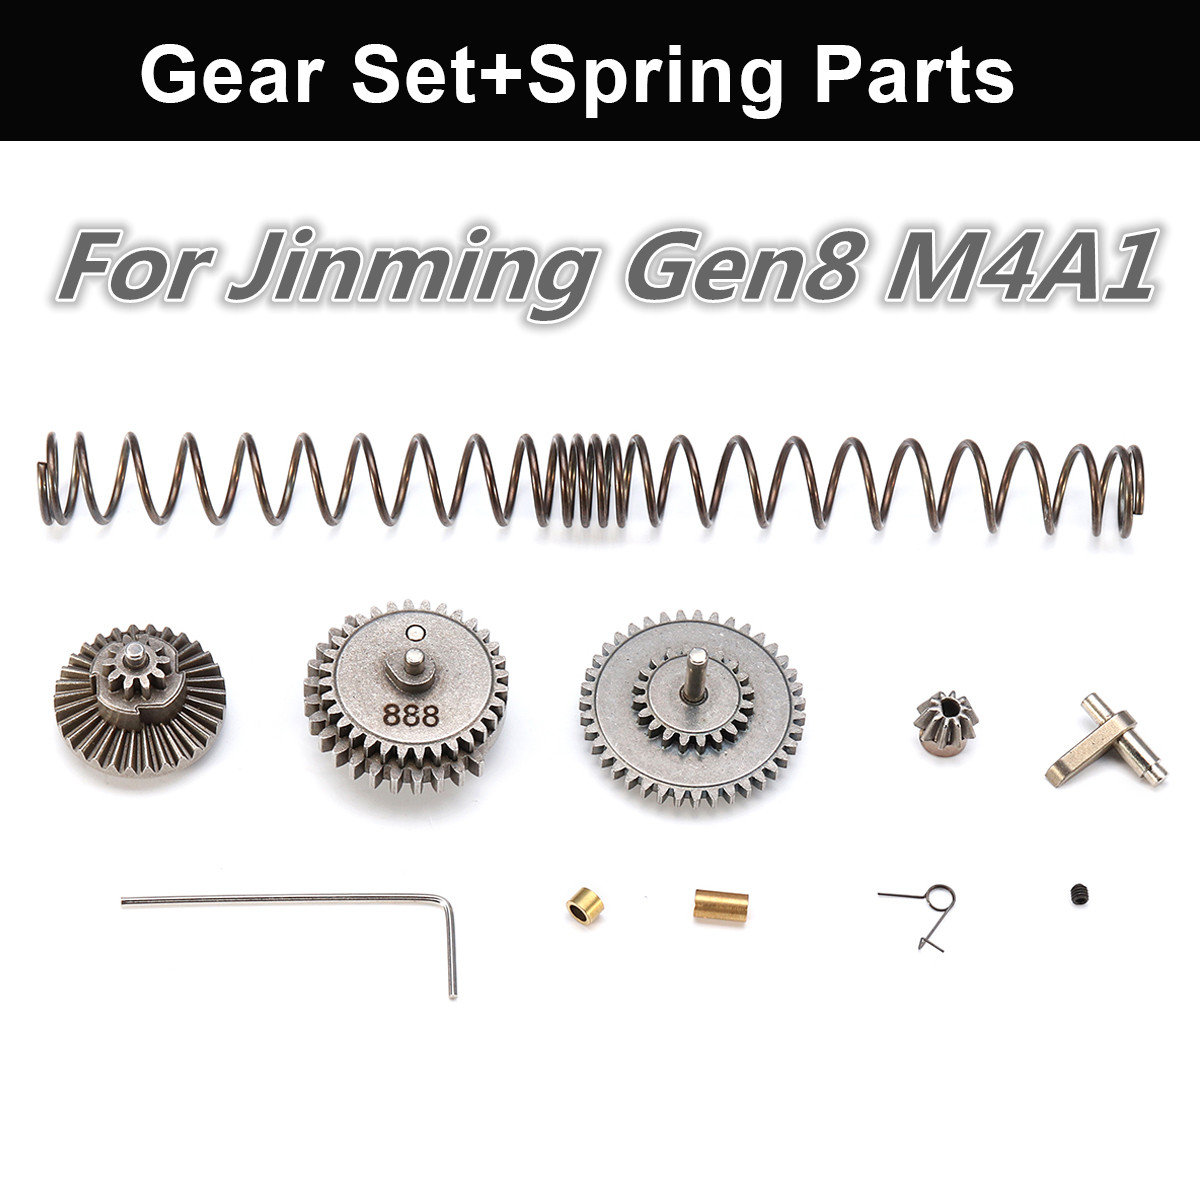 Upgrade Metal Gear Box Set Spring Parts For JinMing Gen8 M4A1 Gel Ball Blastters Water Games Toy  Guns Replacement Accessories